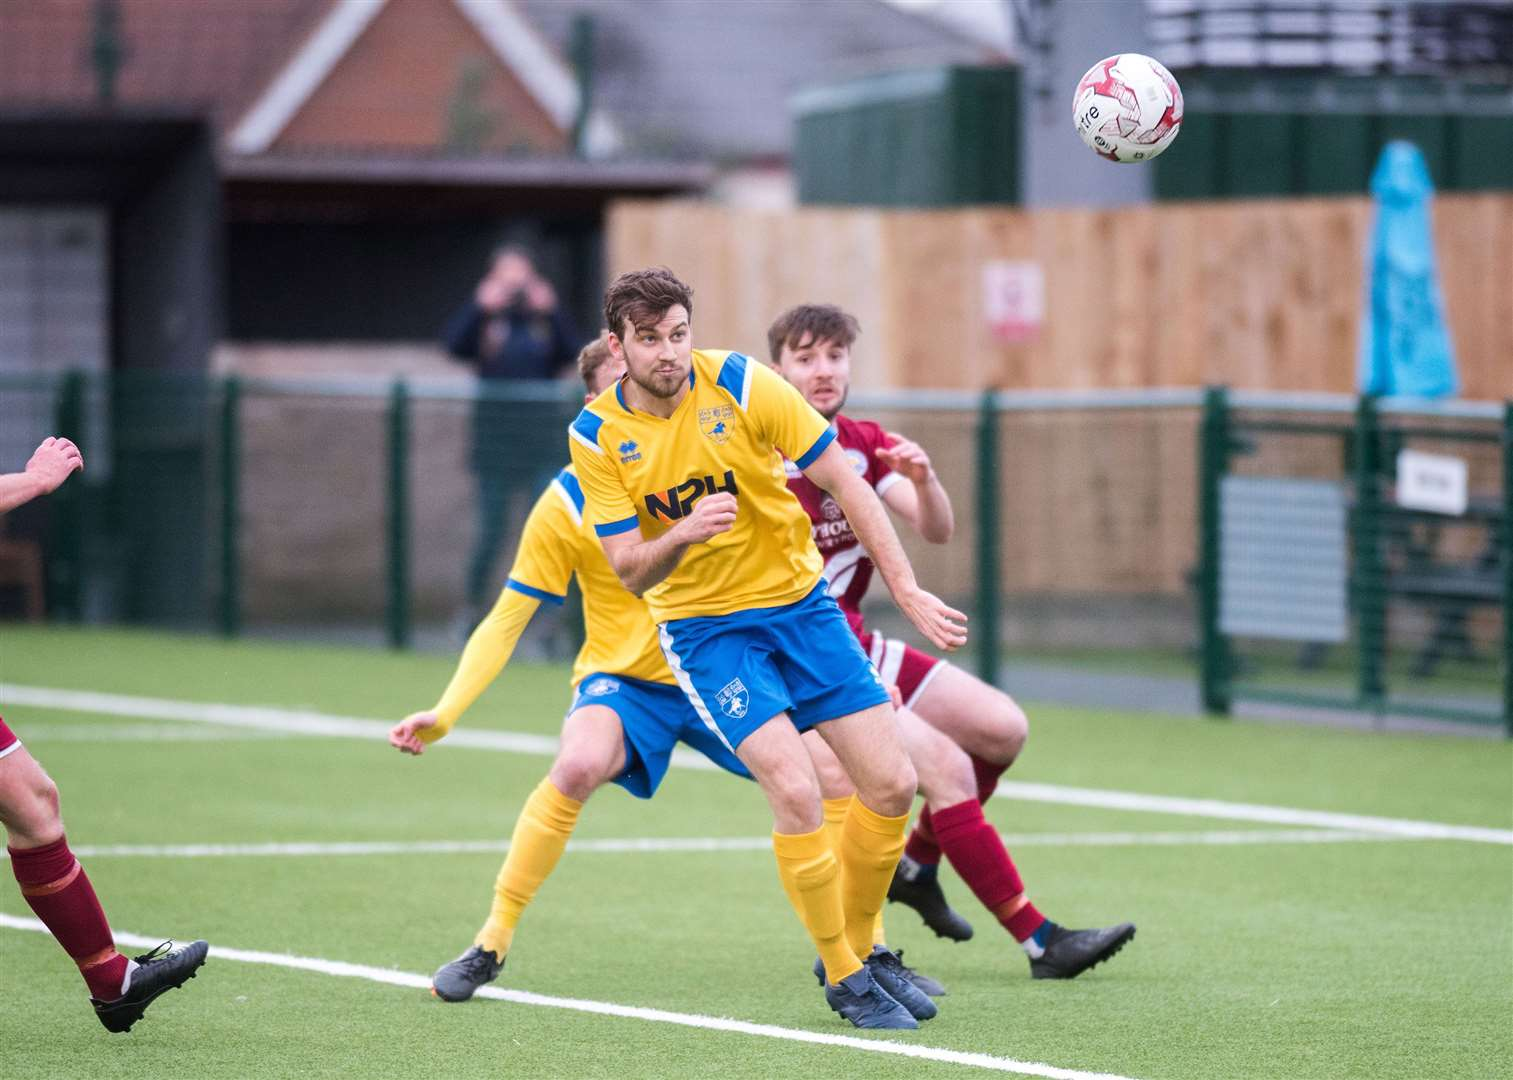 NEWMARKET: Football - Newmarket Town v Kirkley & Pakefield .Newmarket Town Football Club, Newmarket Town Ground, Cricket Field Rd, Newmarket Joe Robinson scores Newmarkets opener. Picture by Mark Westley. (25915238)